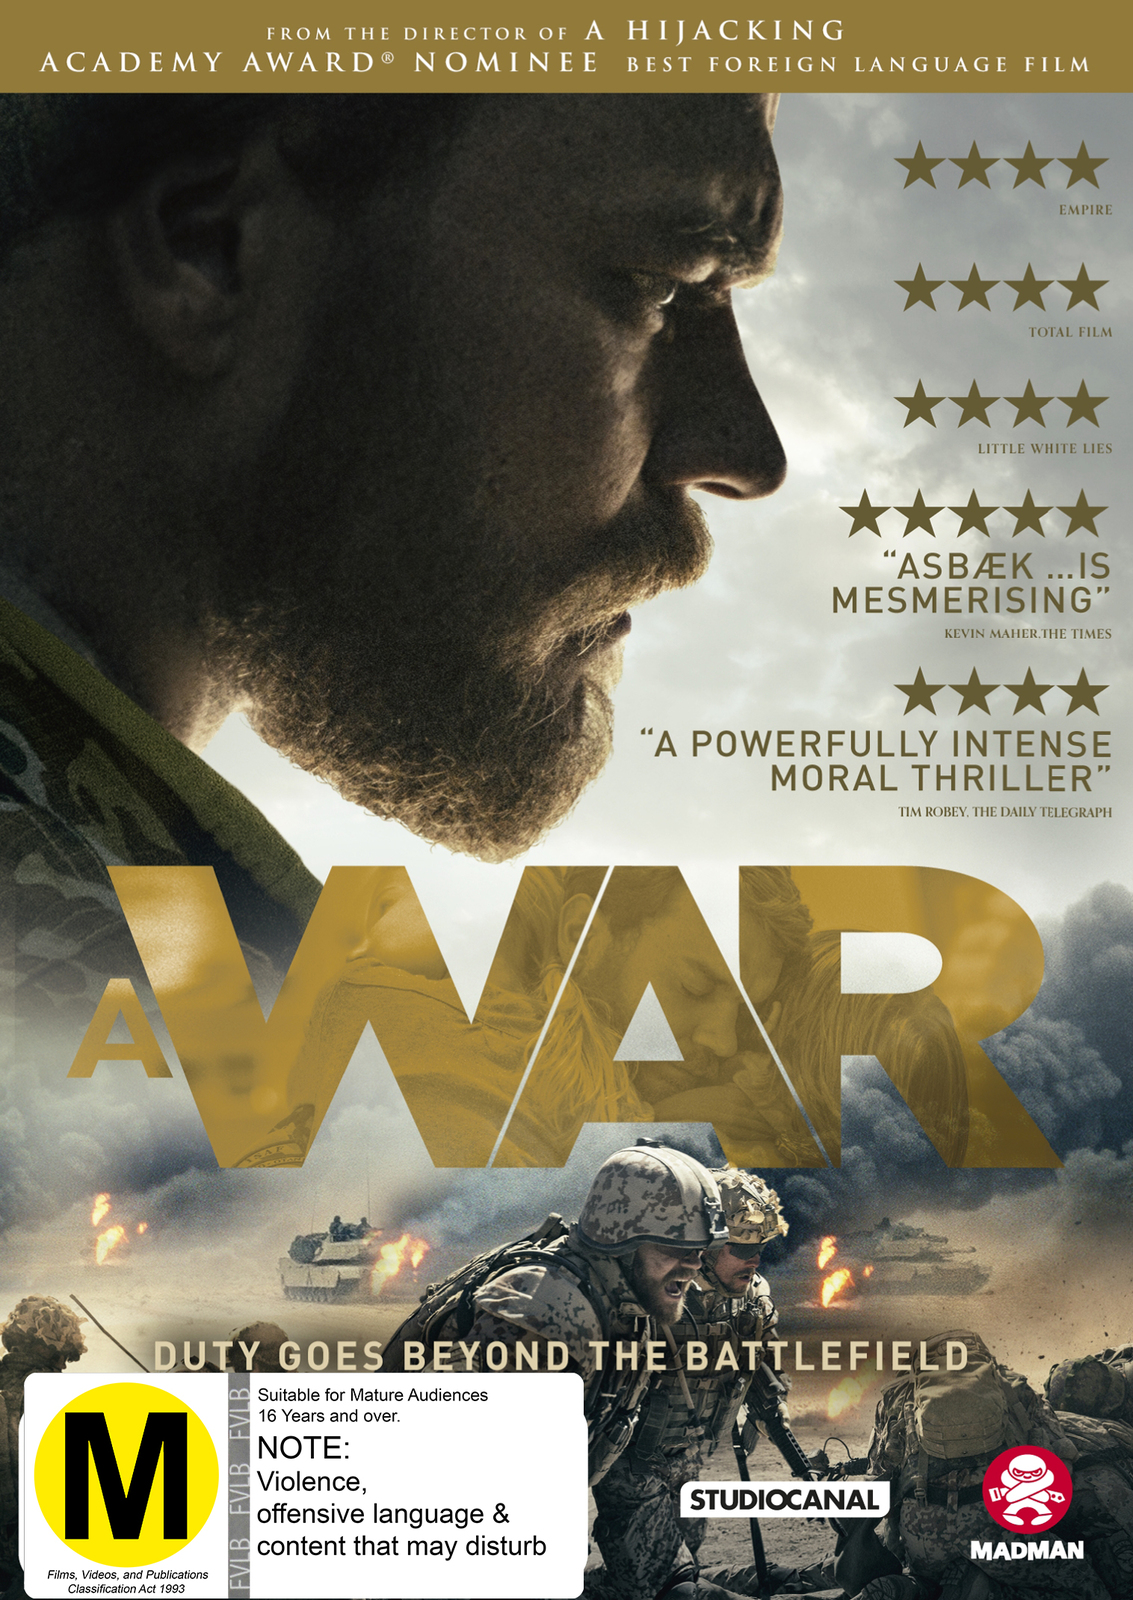 A War on DVD image